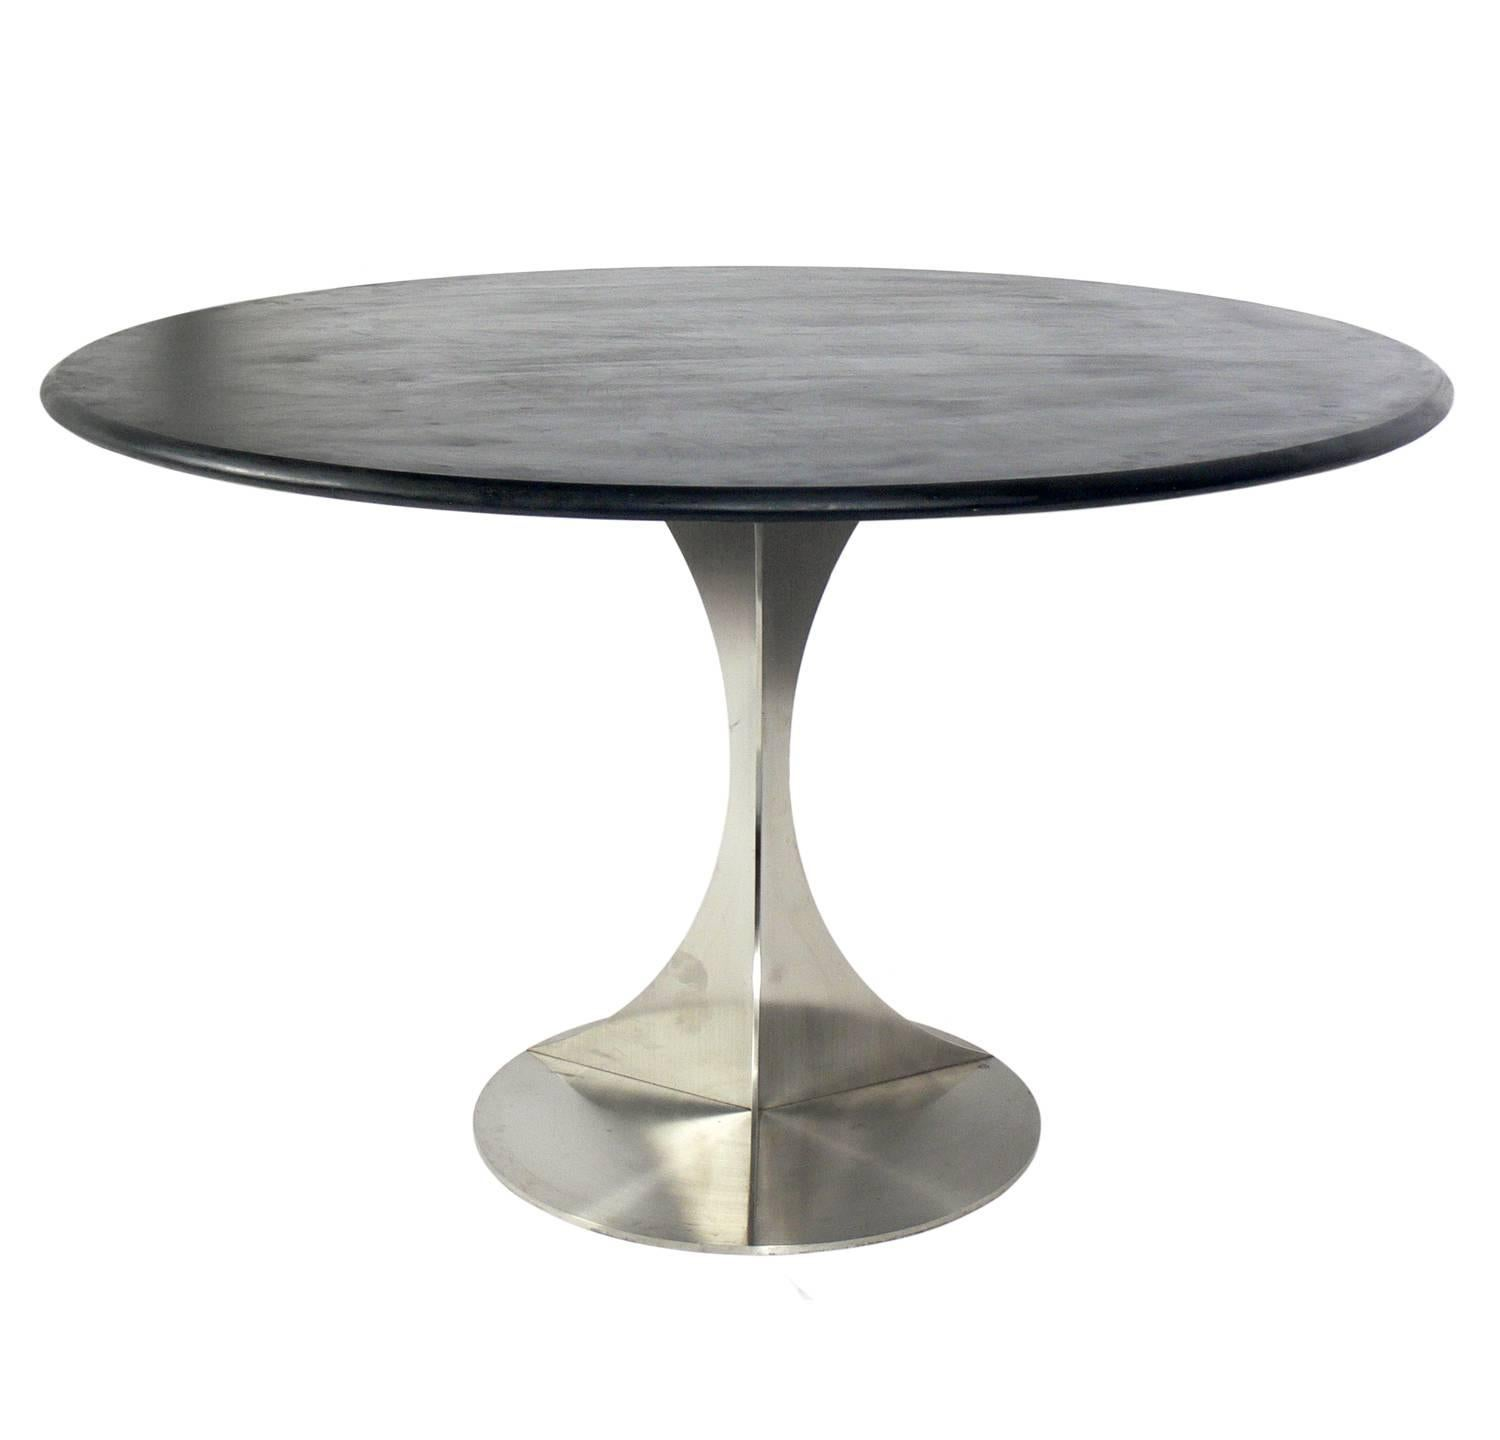 Stainless Steel And Slate Dining Table In The Manner Of Maria Pergay For  Sale At 1stdibs